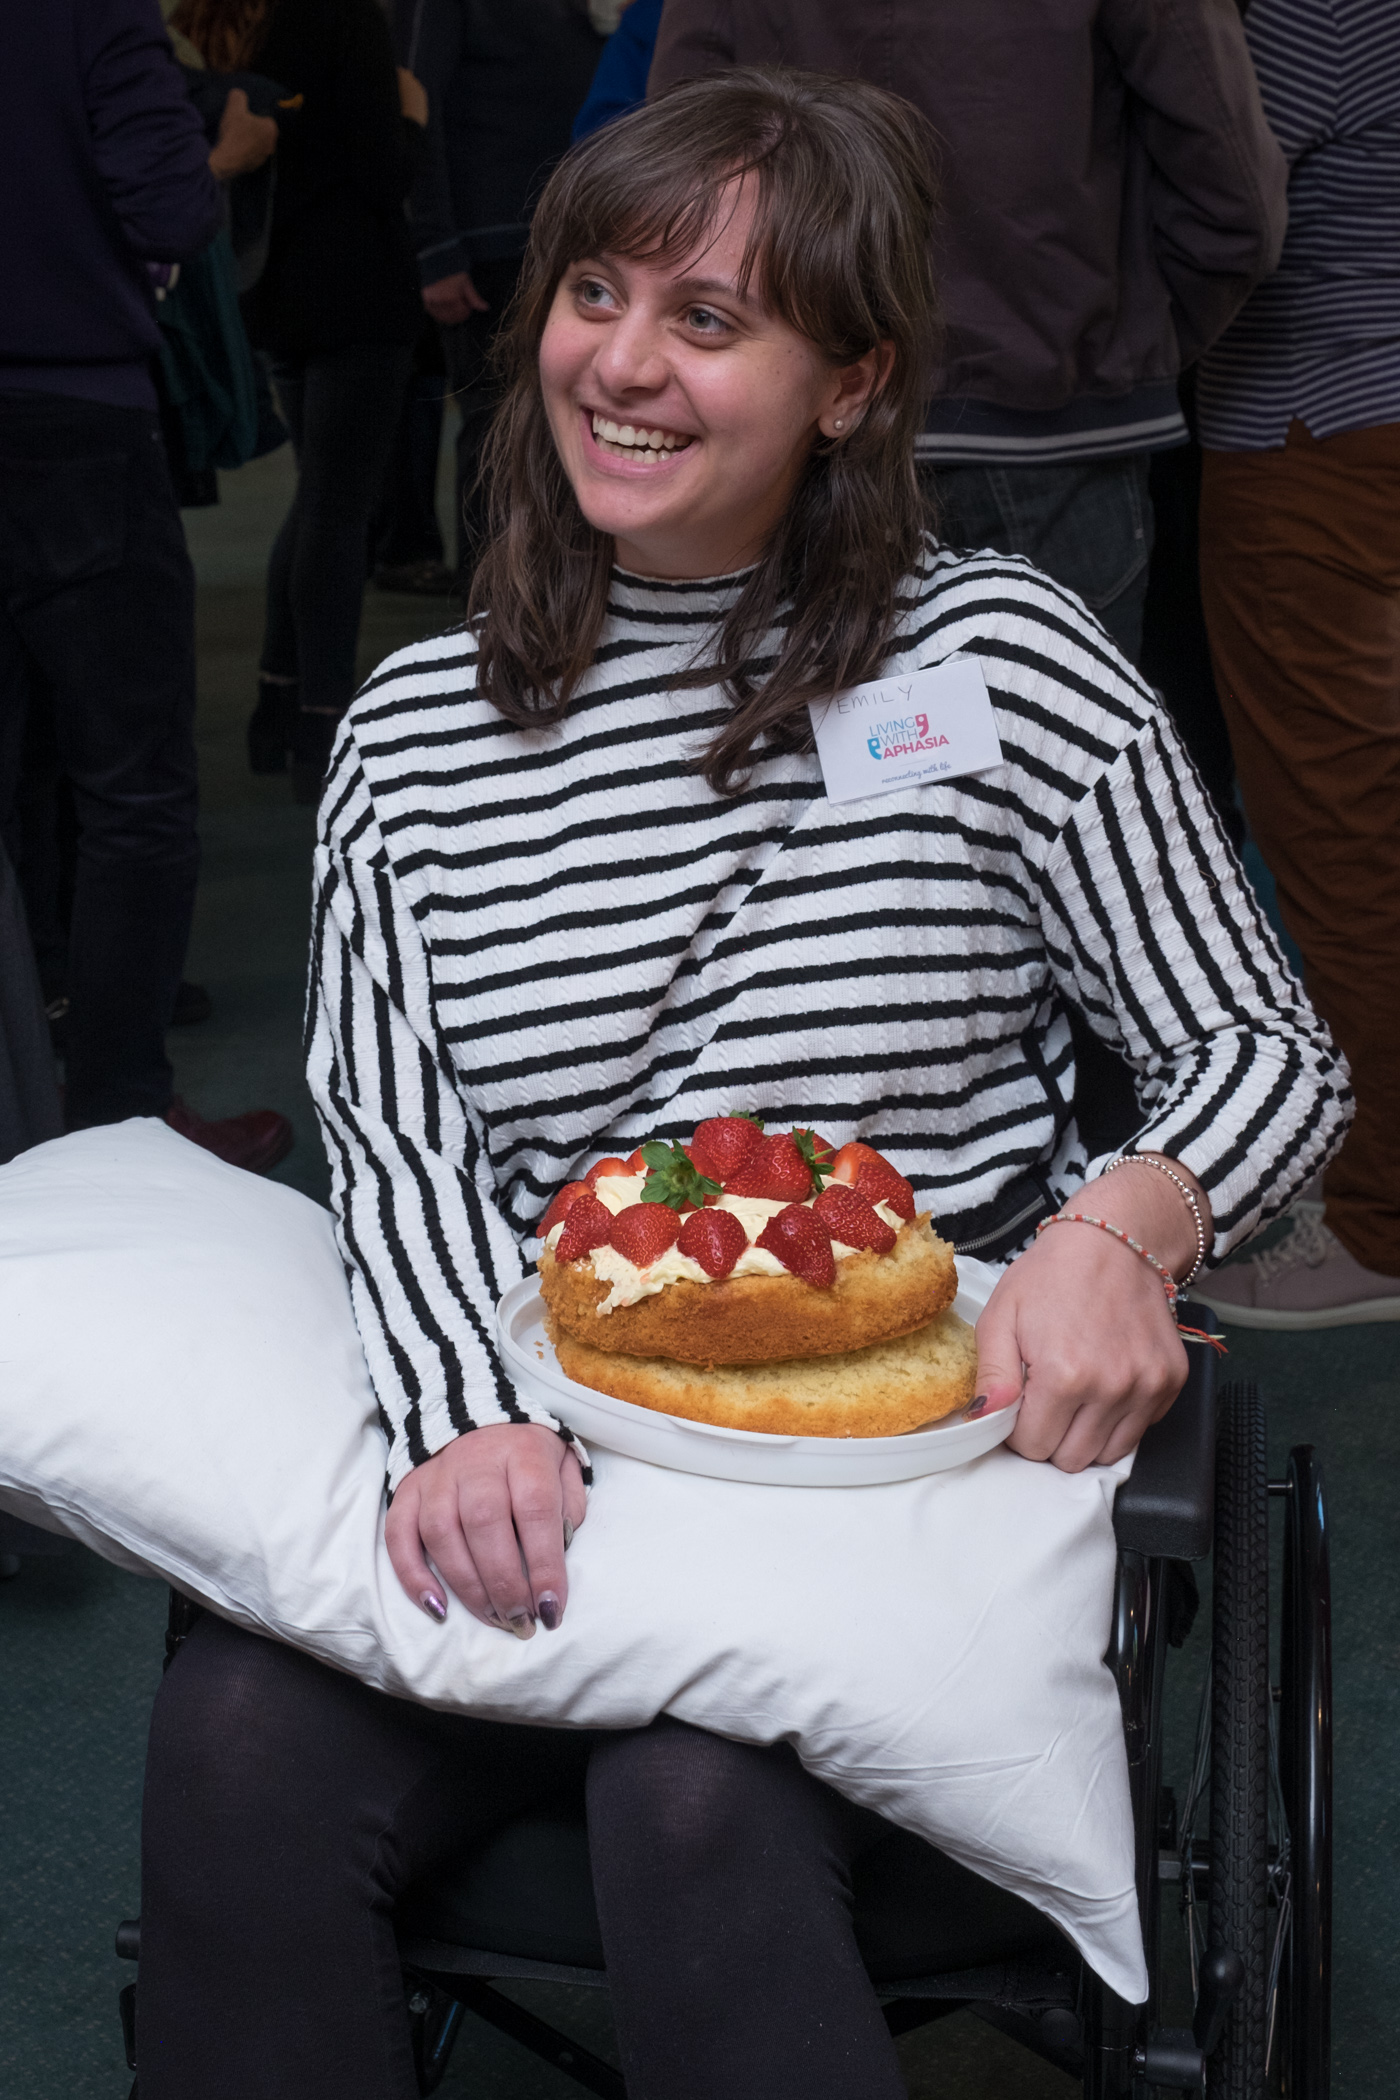 Cake Living with aphasia stroke exeter devon